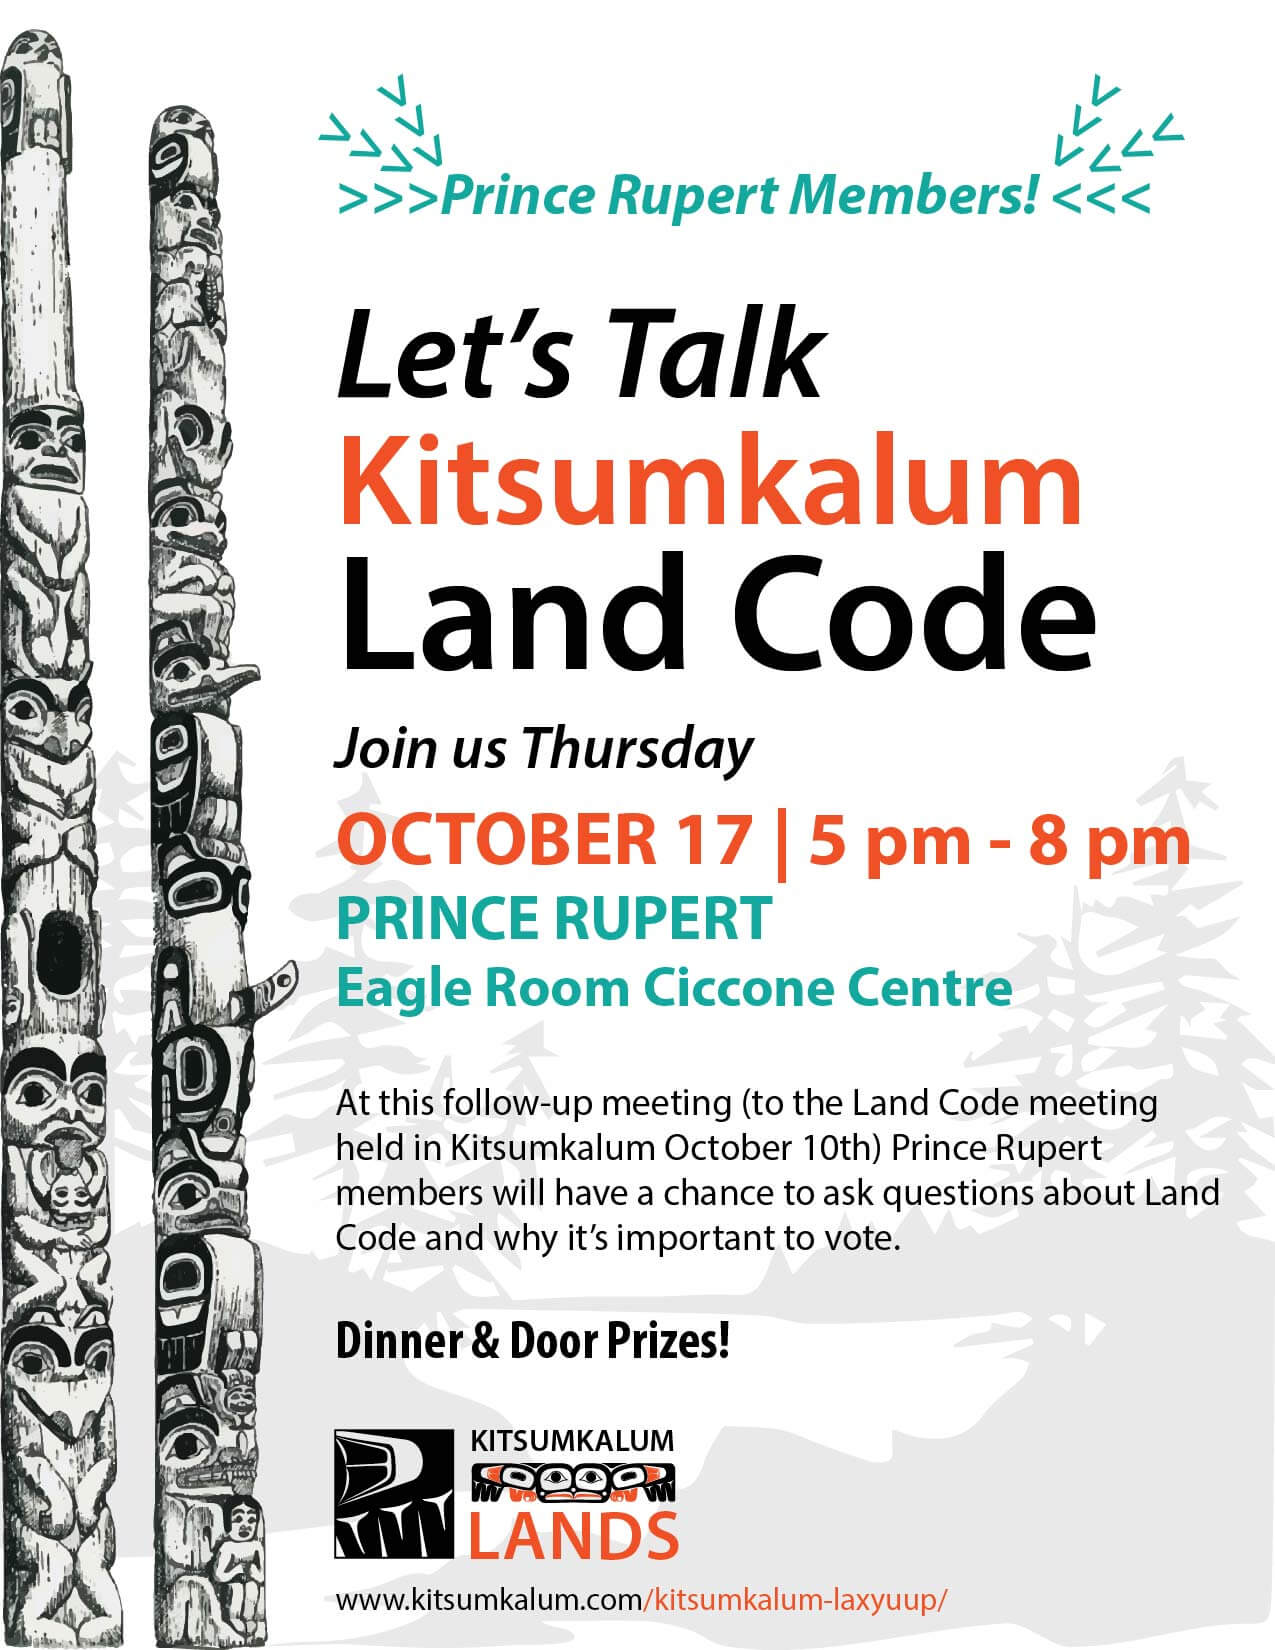 Let's Talk About Land Code PRINCE RUPERT Oct 17